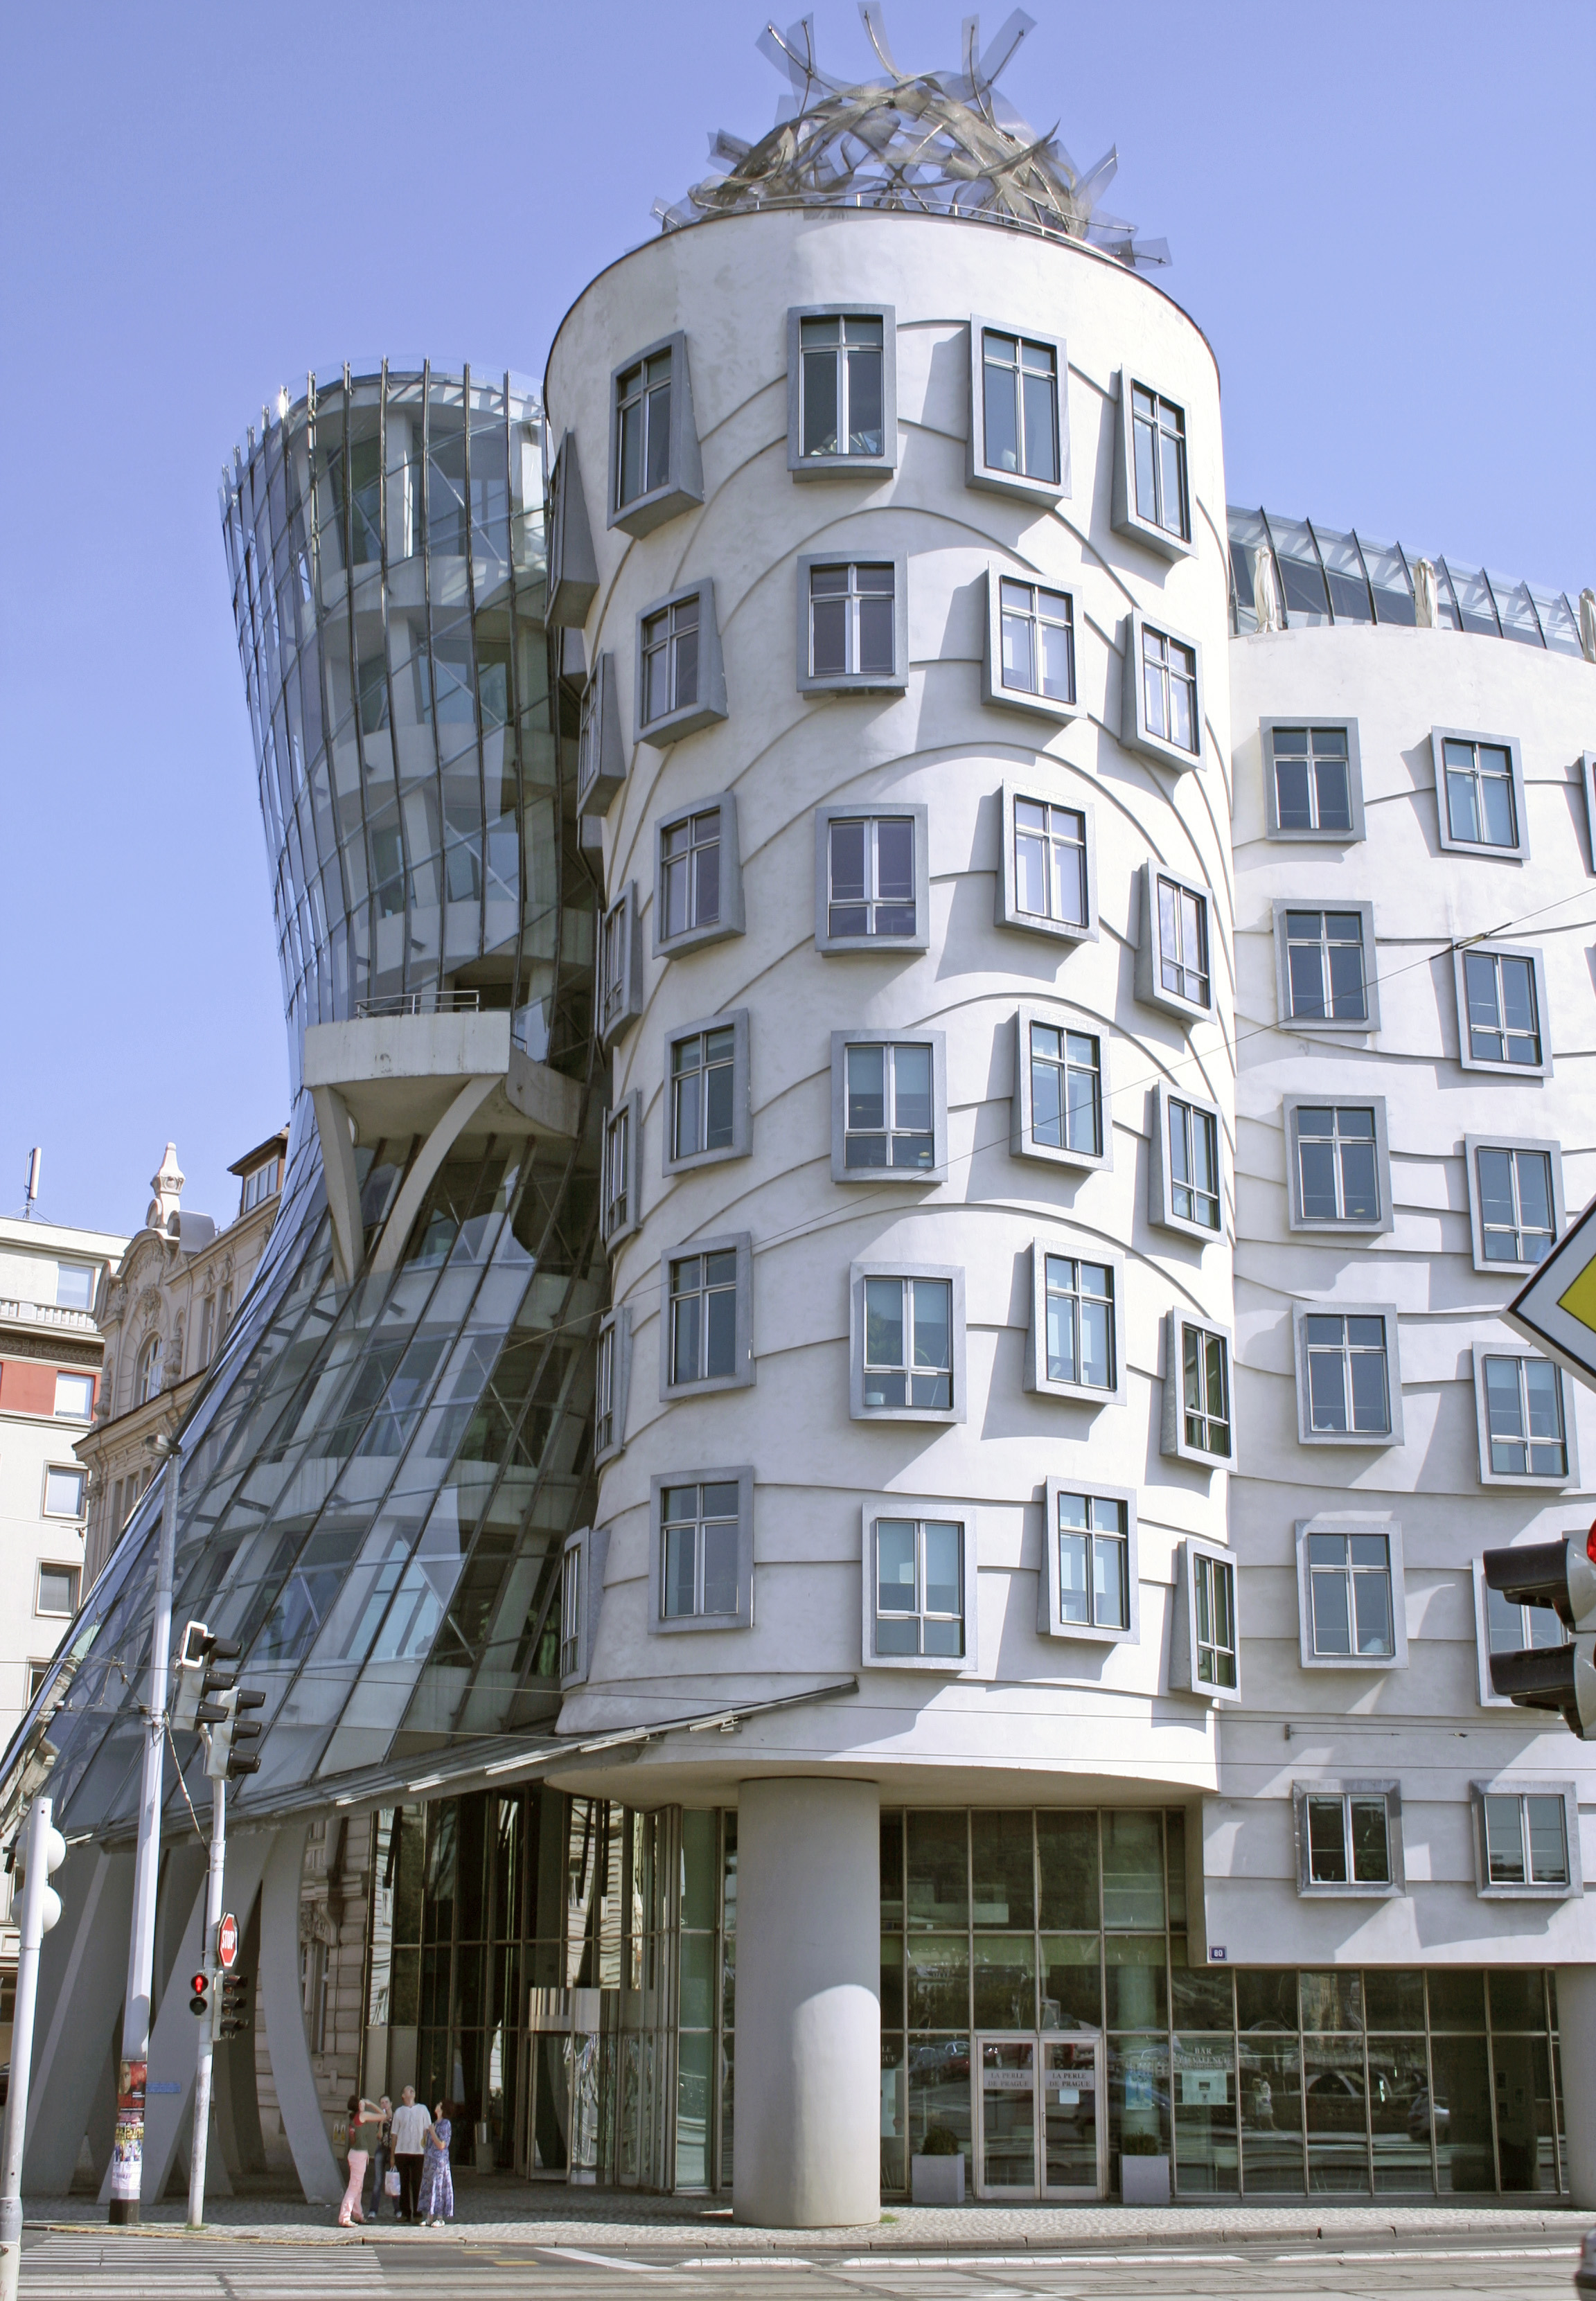 Frank gehry s experience music project seattle - Gehry architekt ...